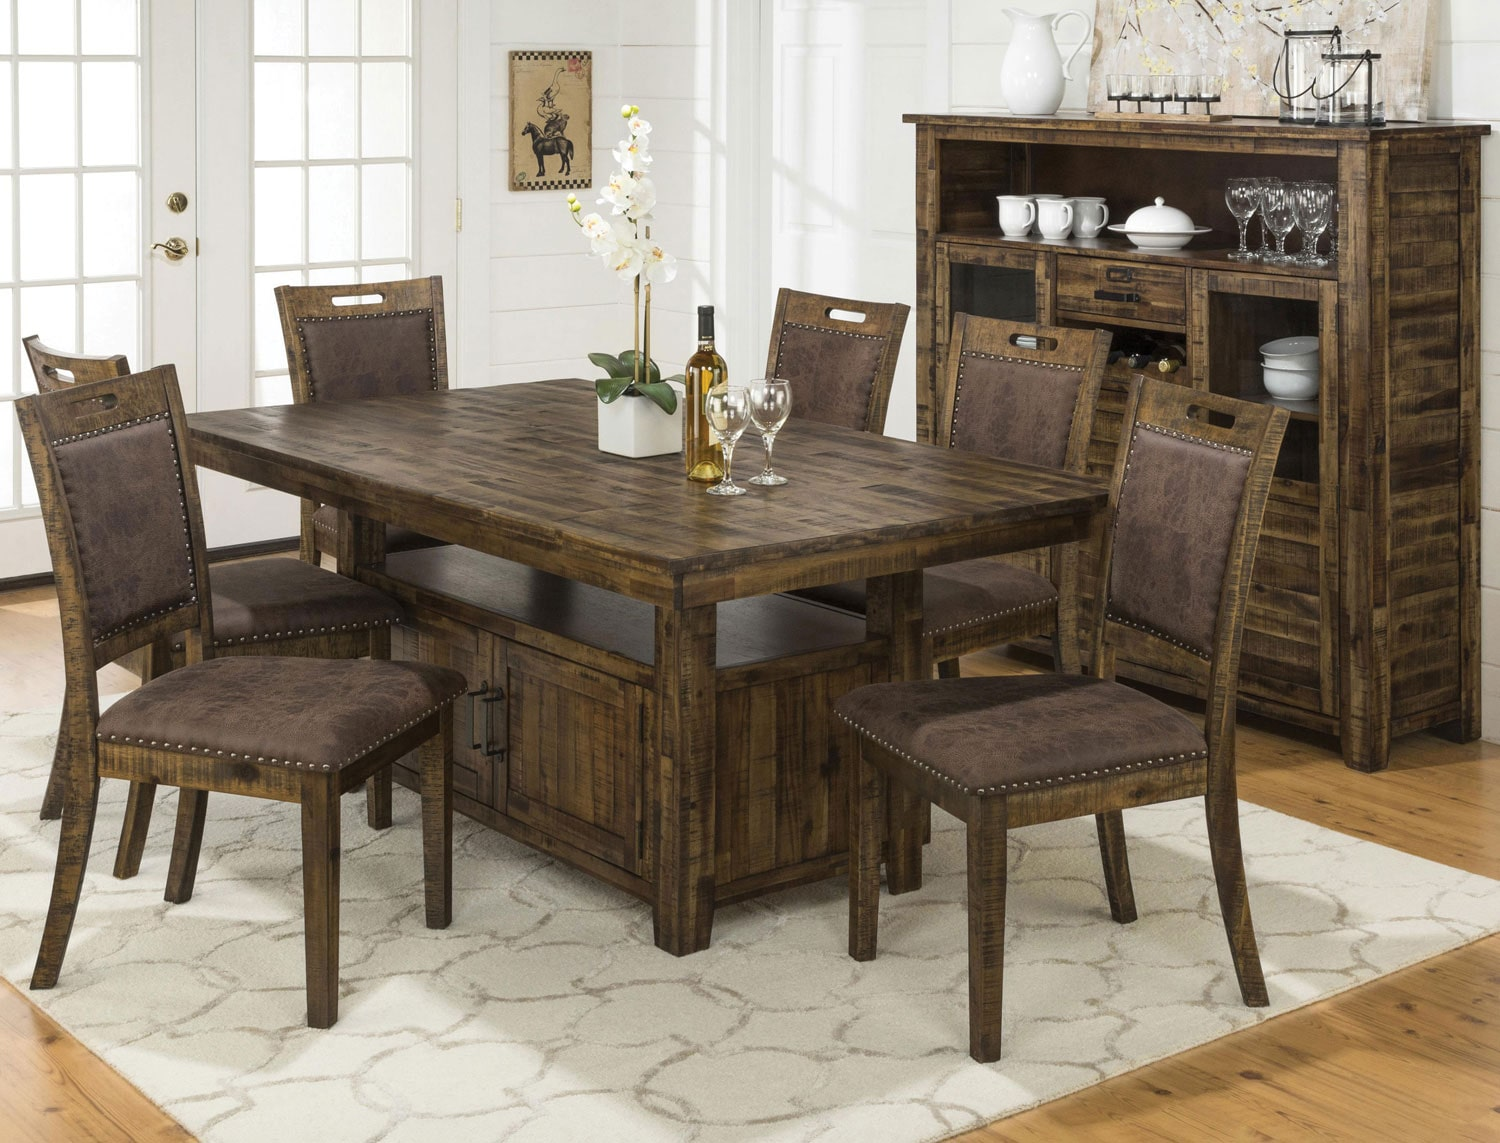 The Reign Dining Collection